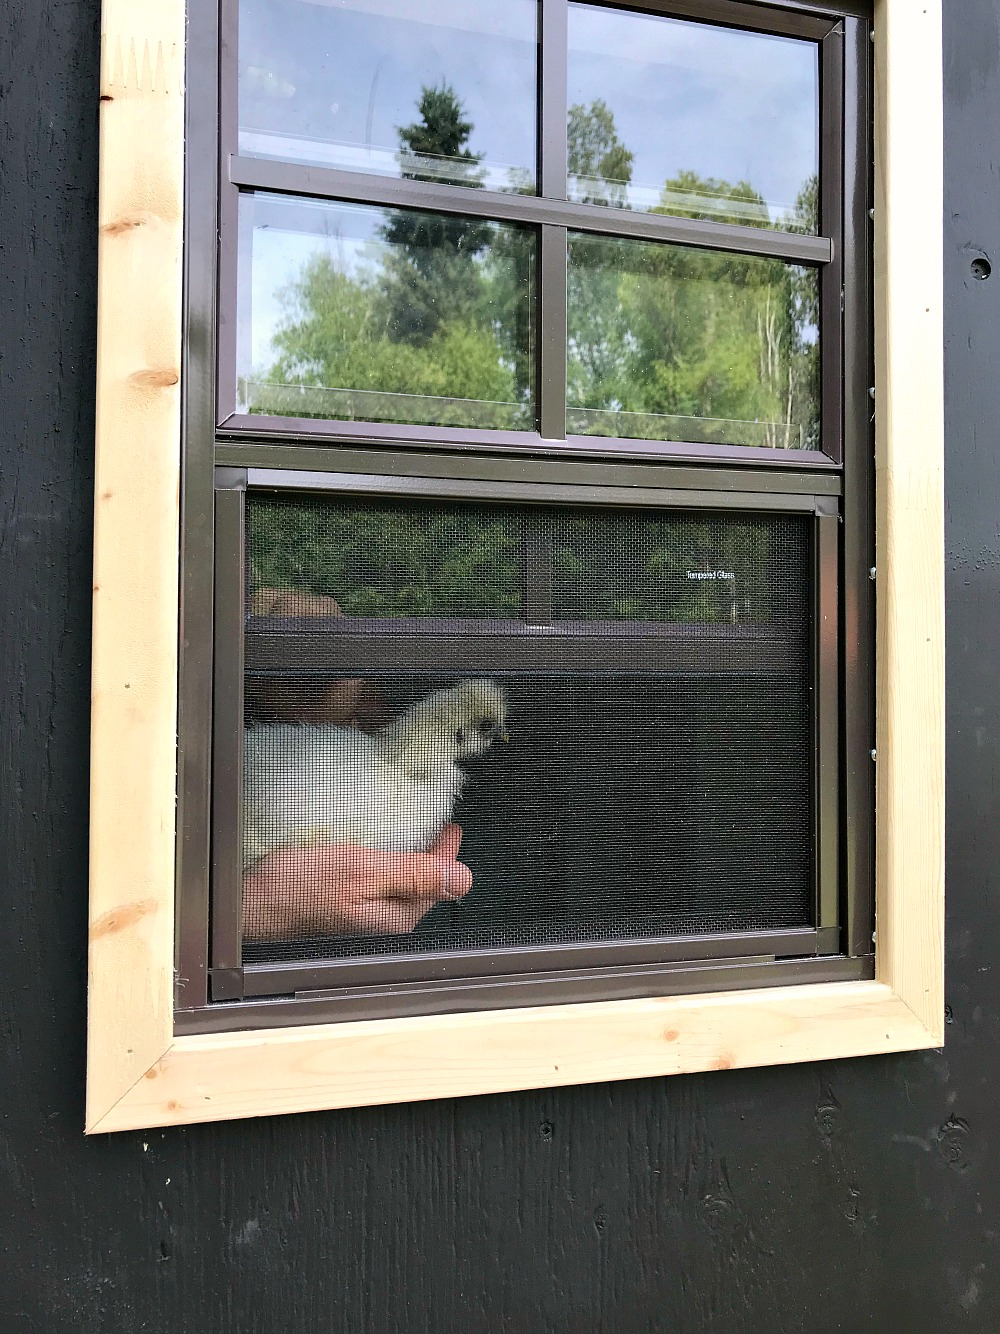 Trim Out a Shed Window